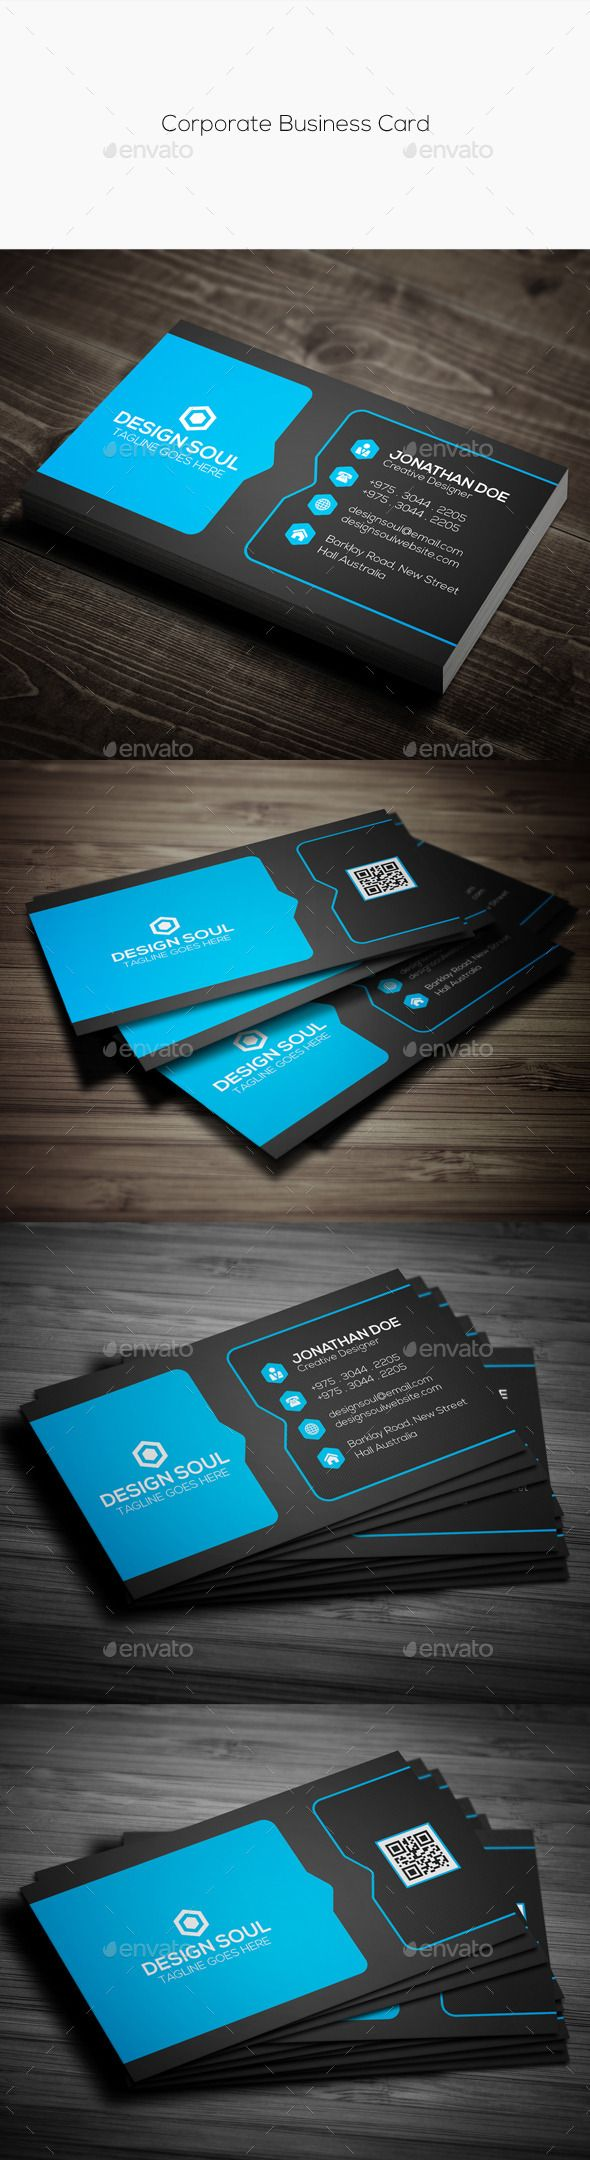 Corporate Business Card Template #design #print Download: http://graphicriver.net/item/corporate-business-card/11949213?ref=ksioks